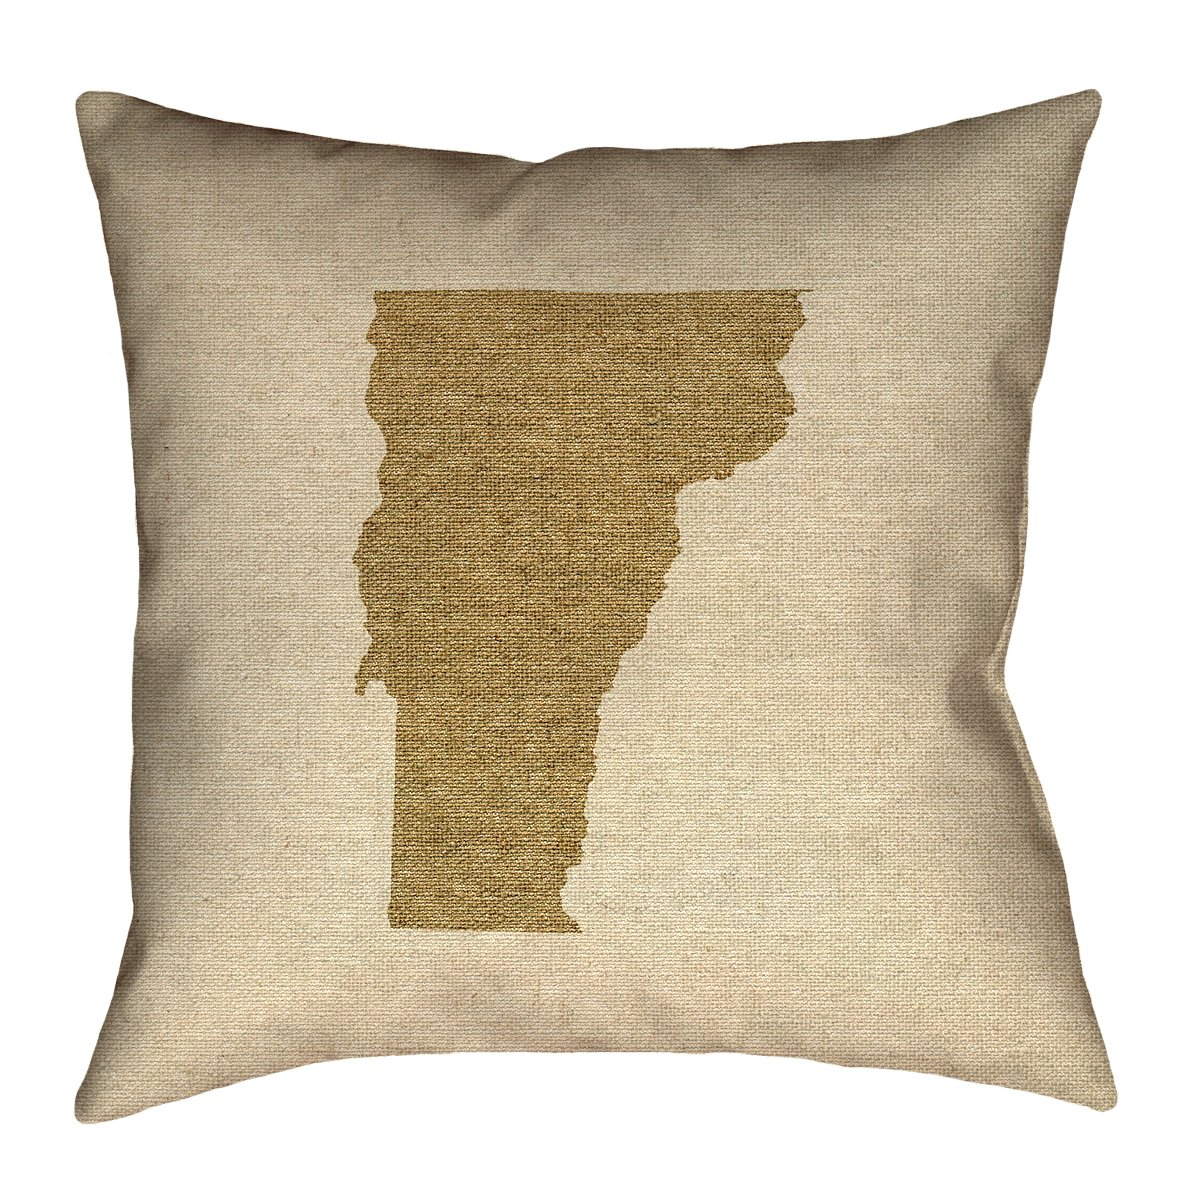 ArtVerse Katelyn Smith Vermont Canvas 14' x 14' Pillow-Faux Linen (Updated Fabric) Double Sided Print with Concealed Zipper & Insert